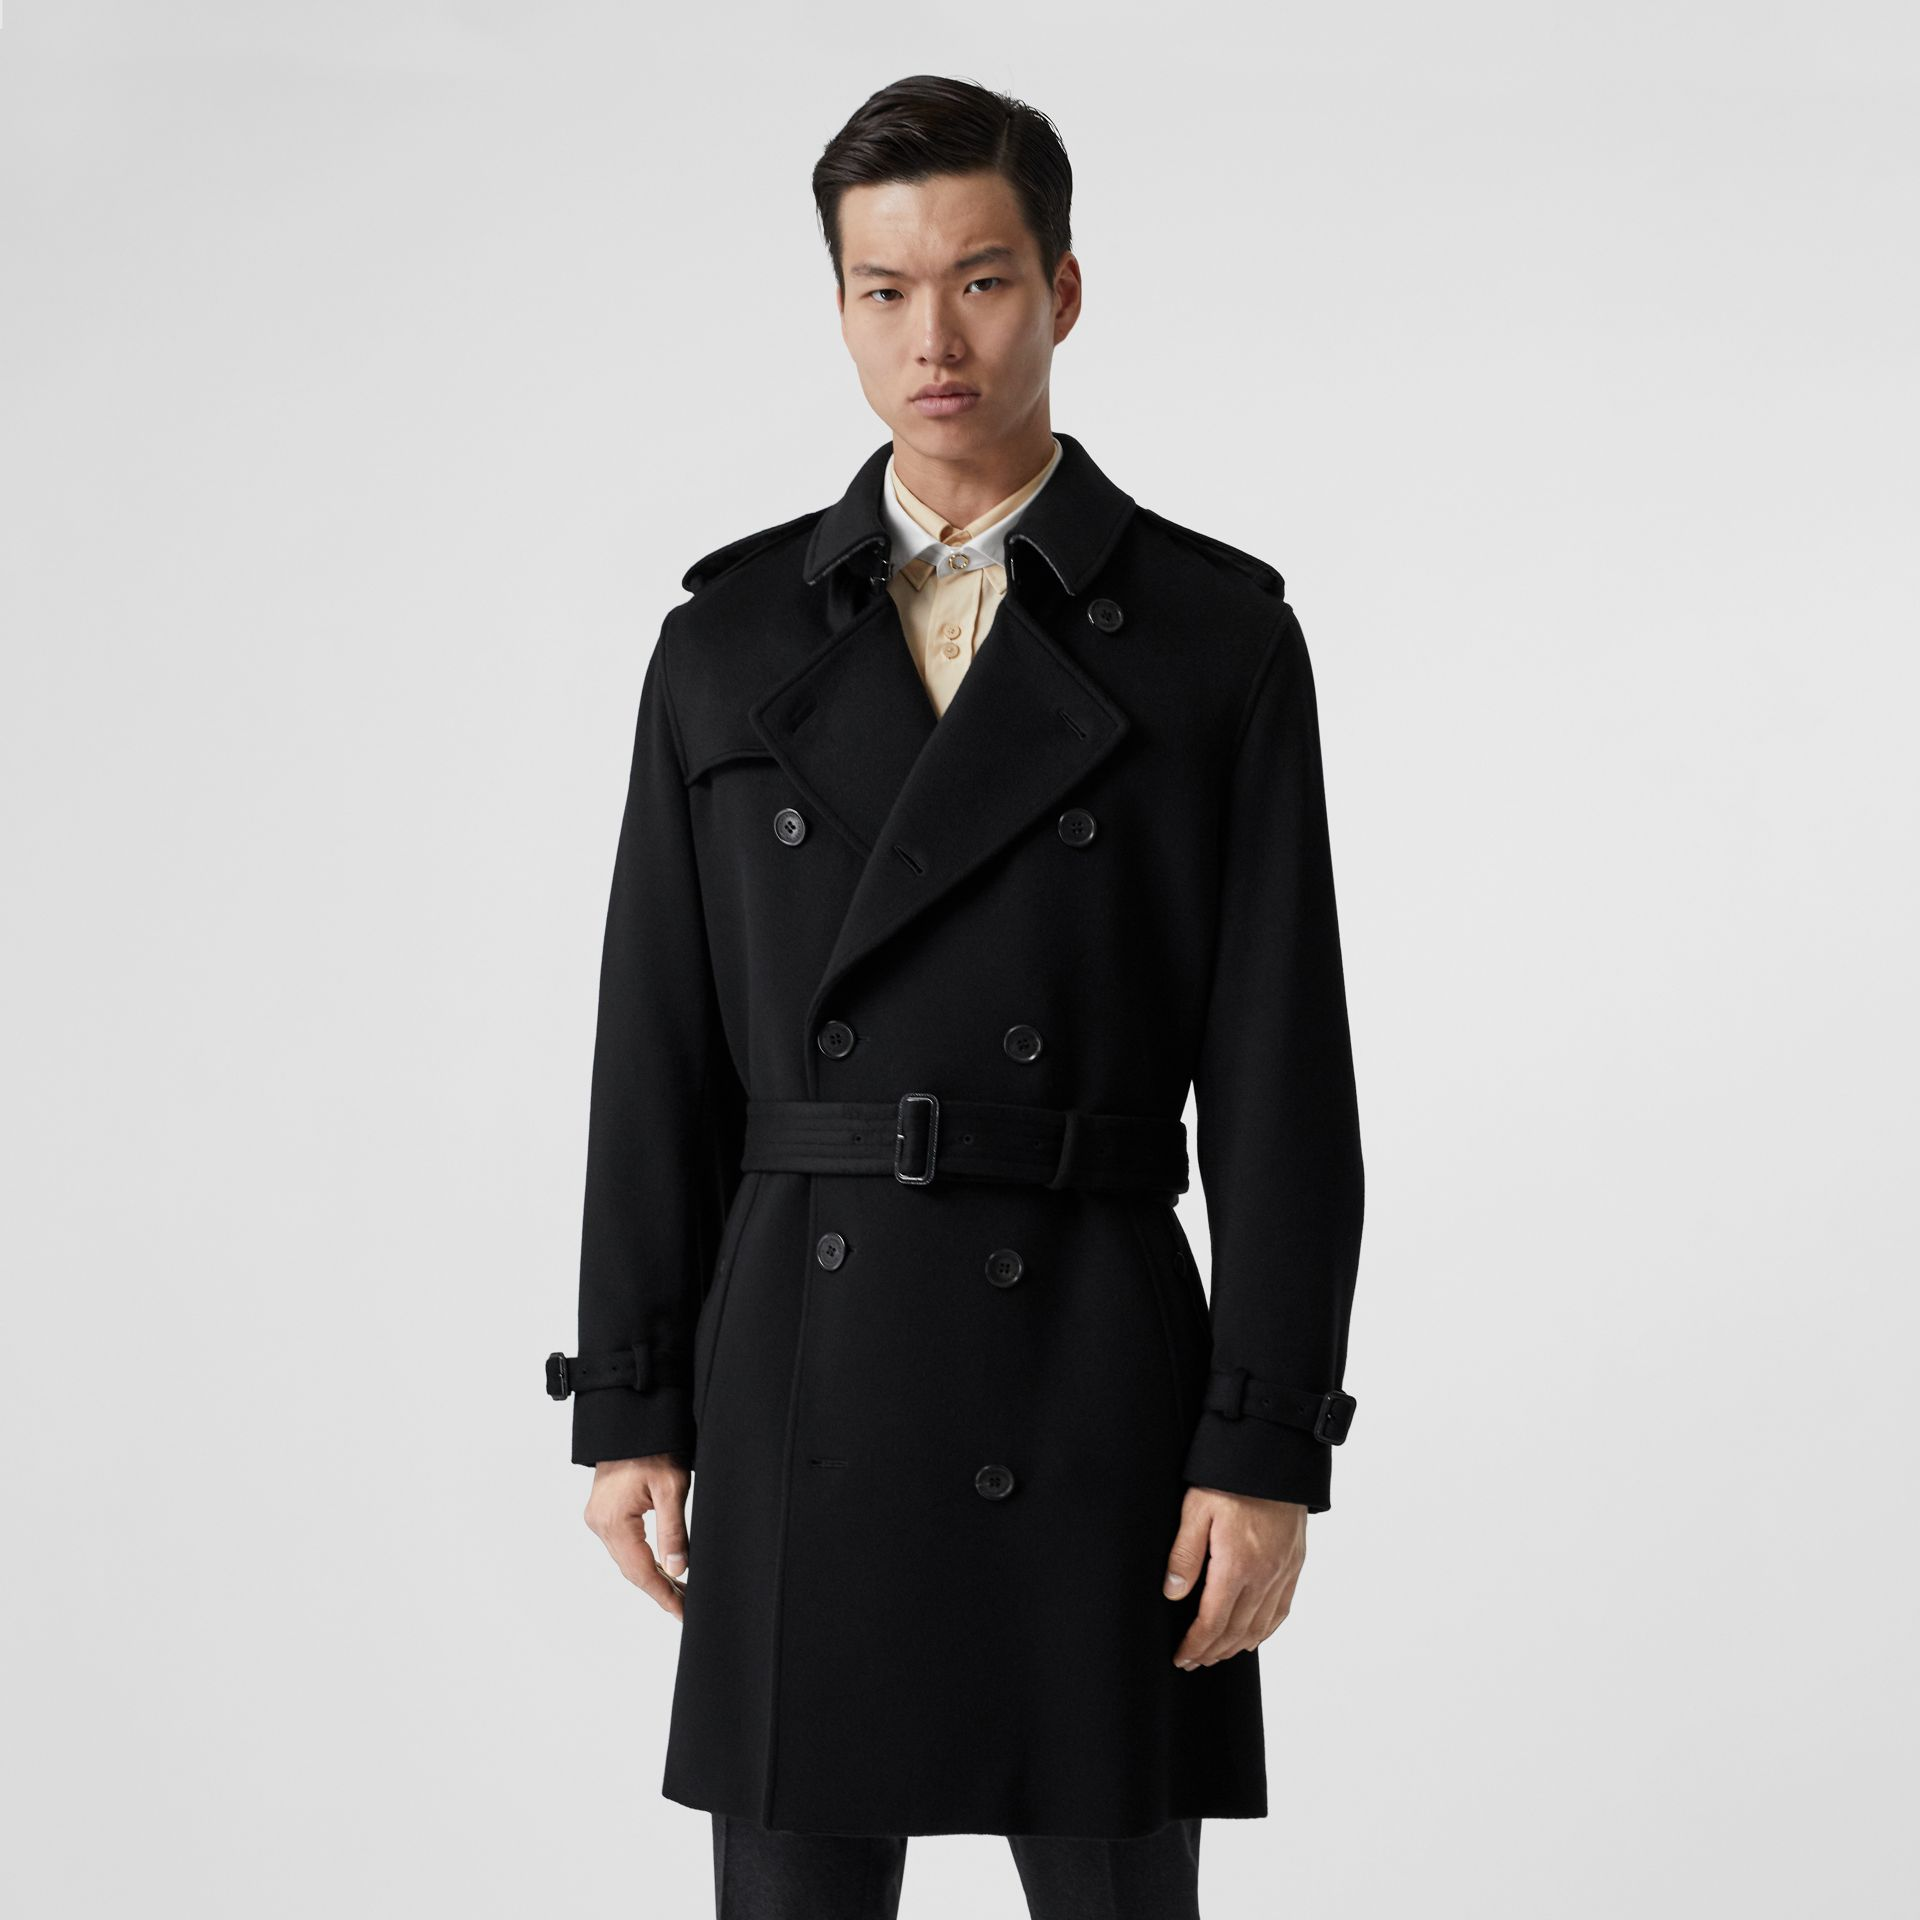 Cashmere Trench Coat in Black - Men | Burberry Hong Kong S.A.R - gallery image 6